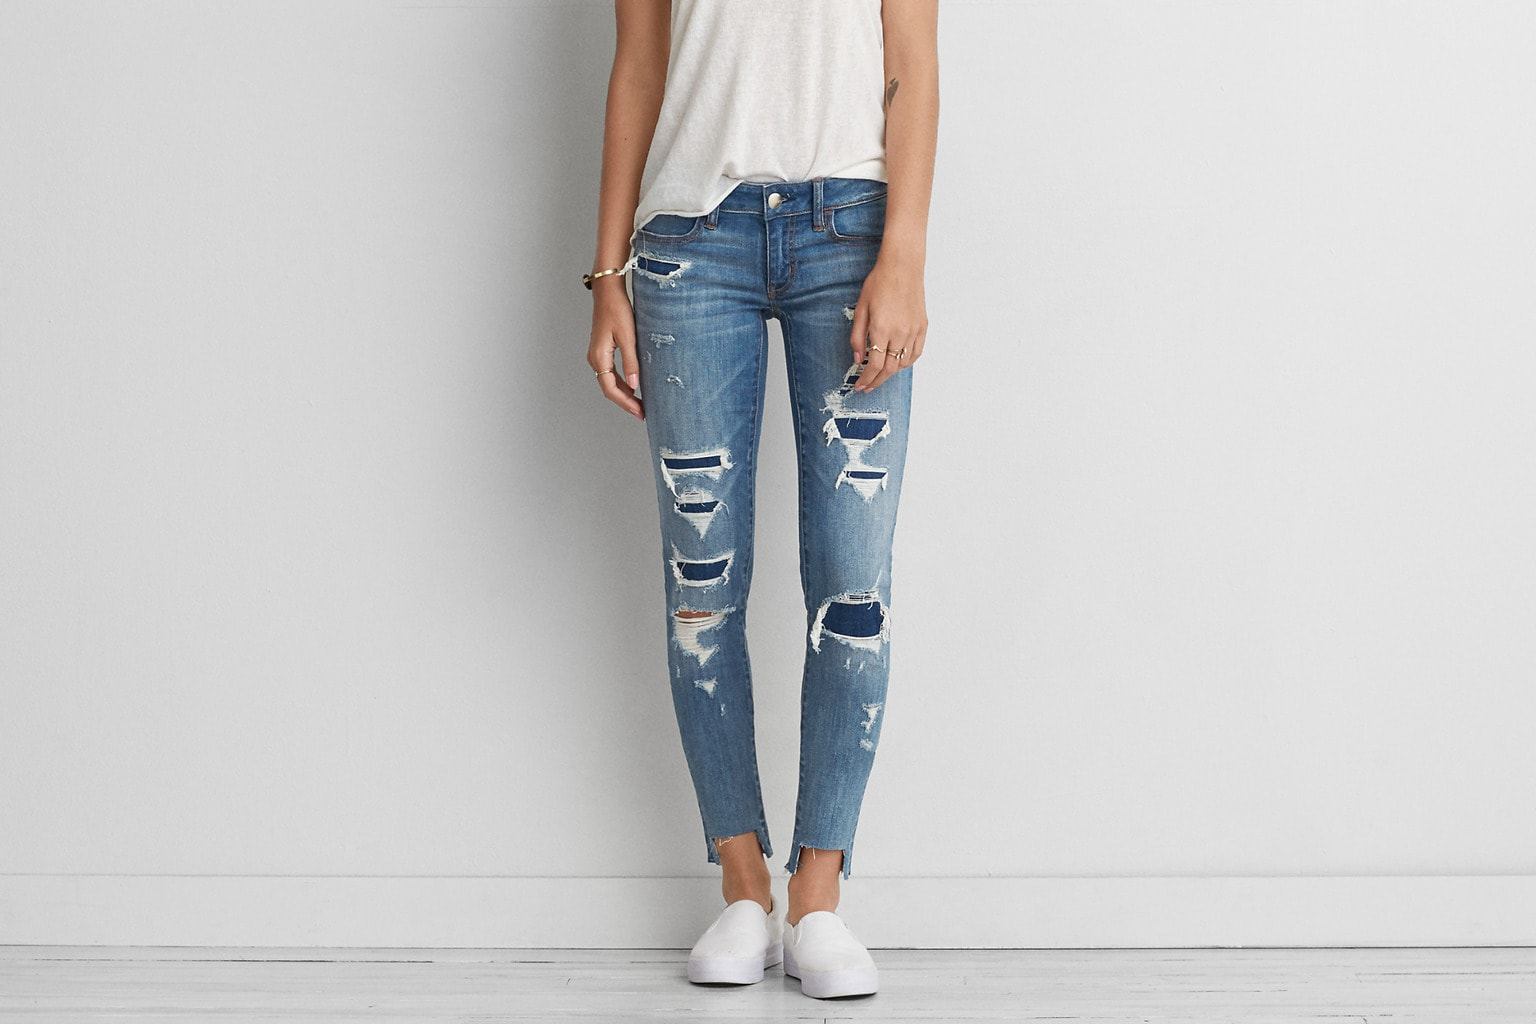 Distressed and patched skinny jean